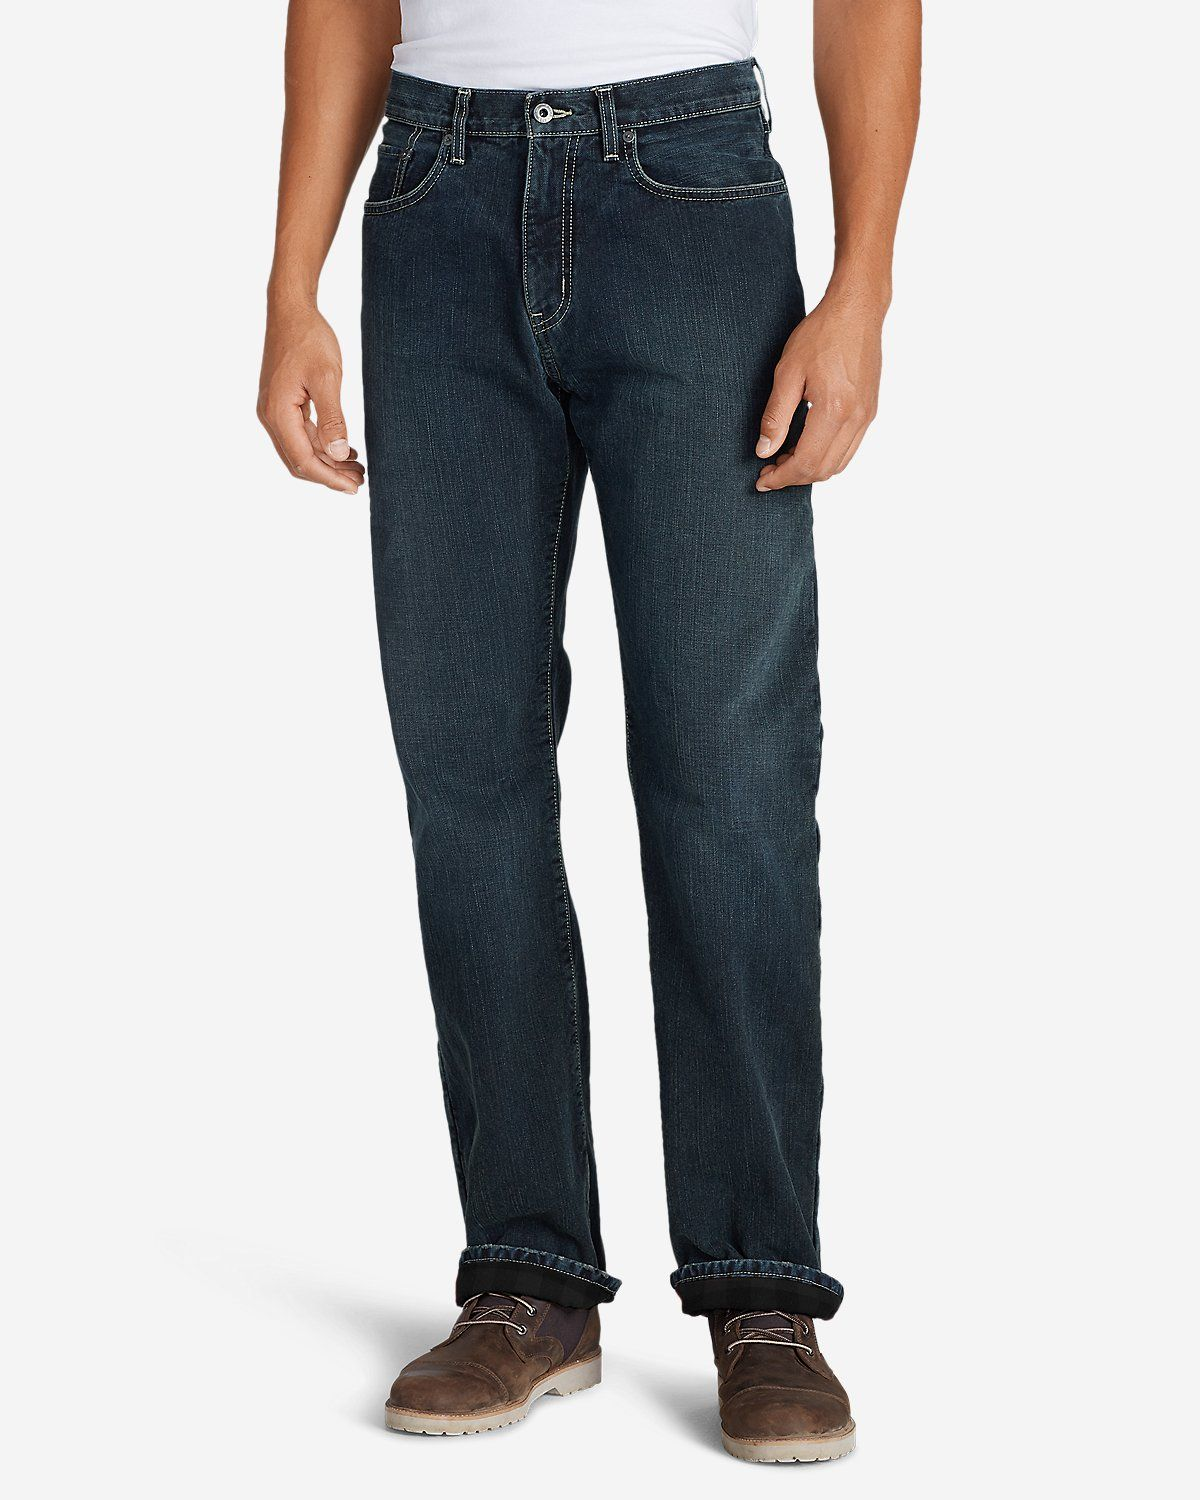 Men's Fleecelined Jeans Straight Fit Eddie Bauer